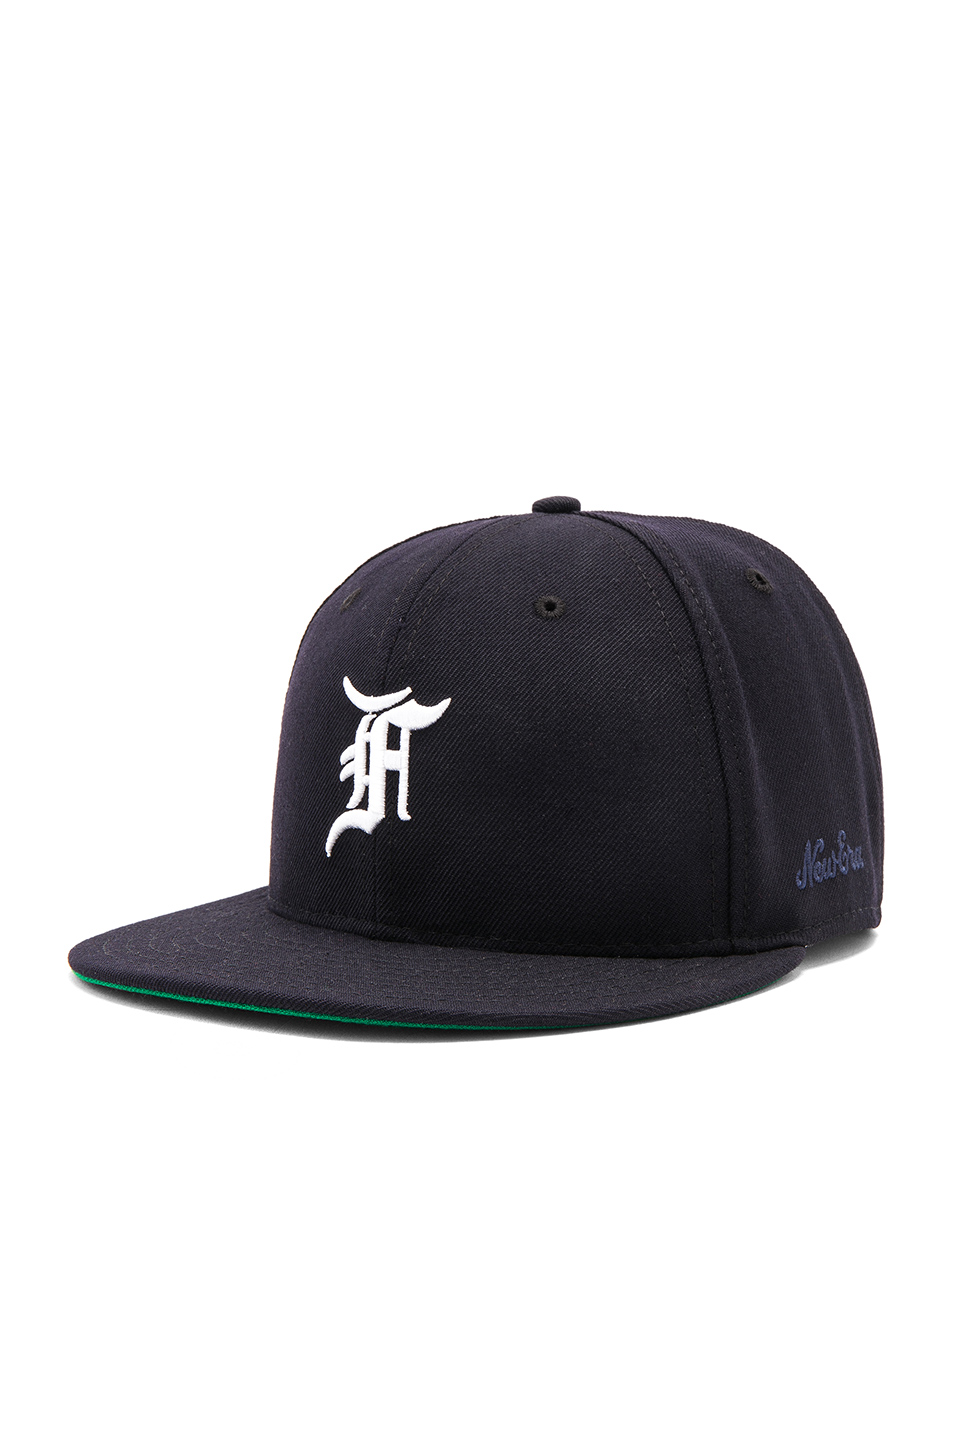 8e8d5c32a x New Era Fitted Cap, Fear of God